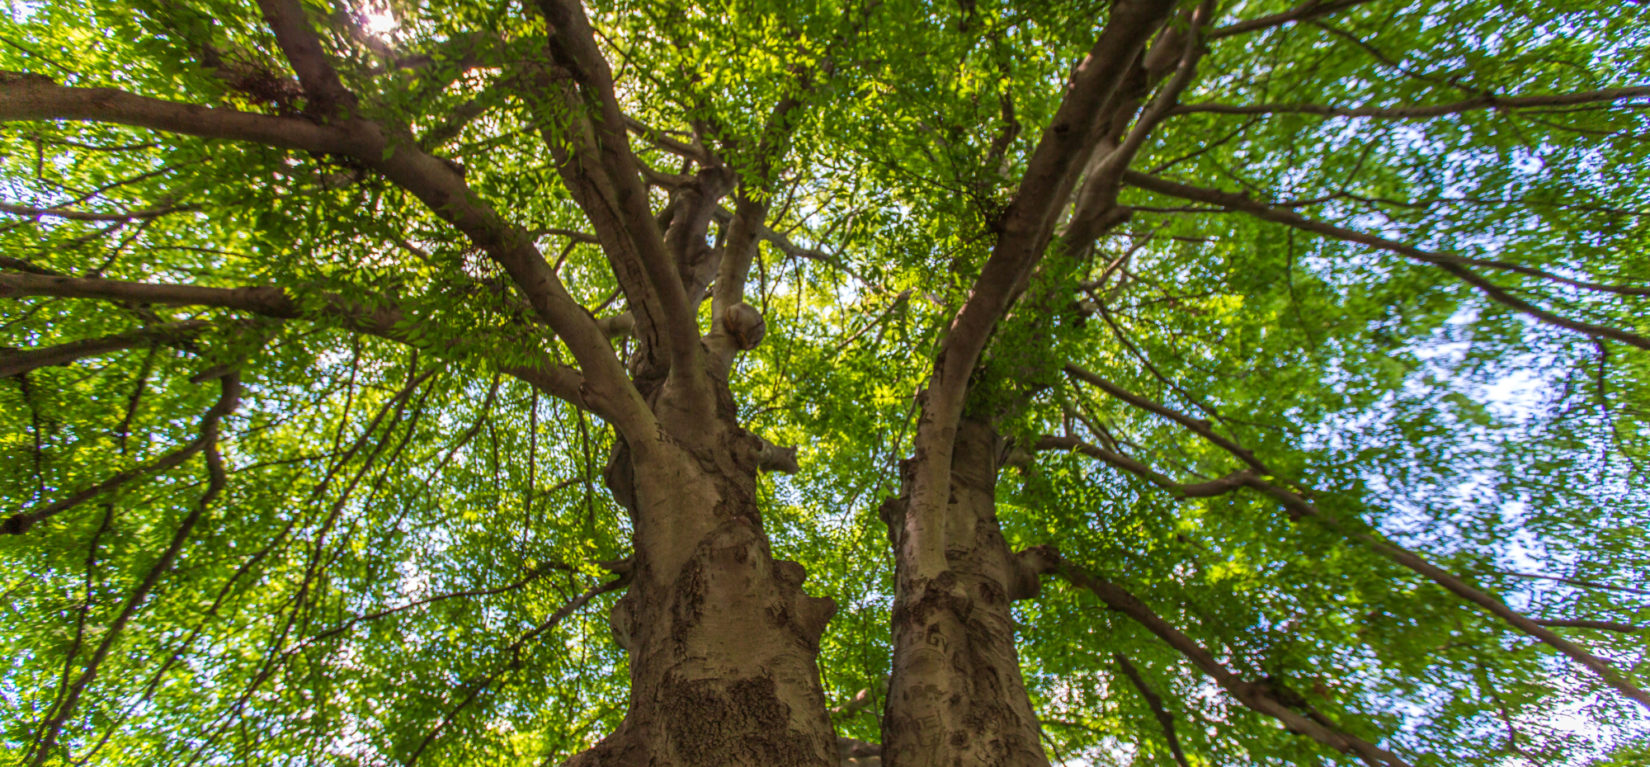 Looking up through the branches of a tree at Cherry Hill